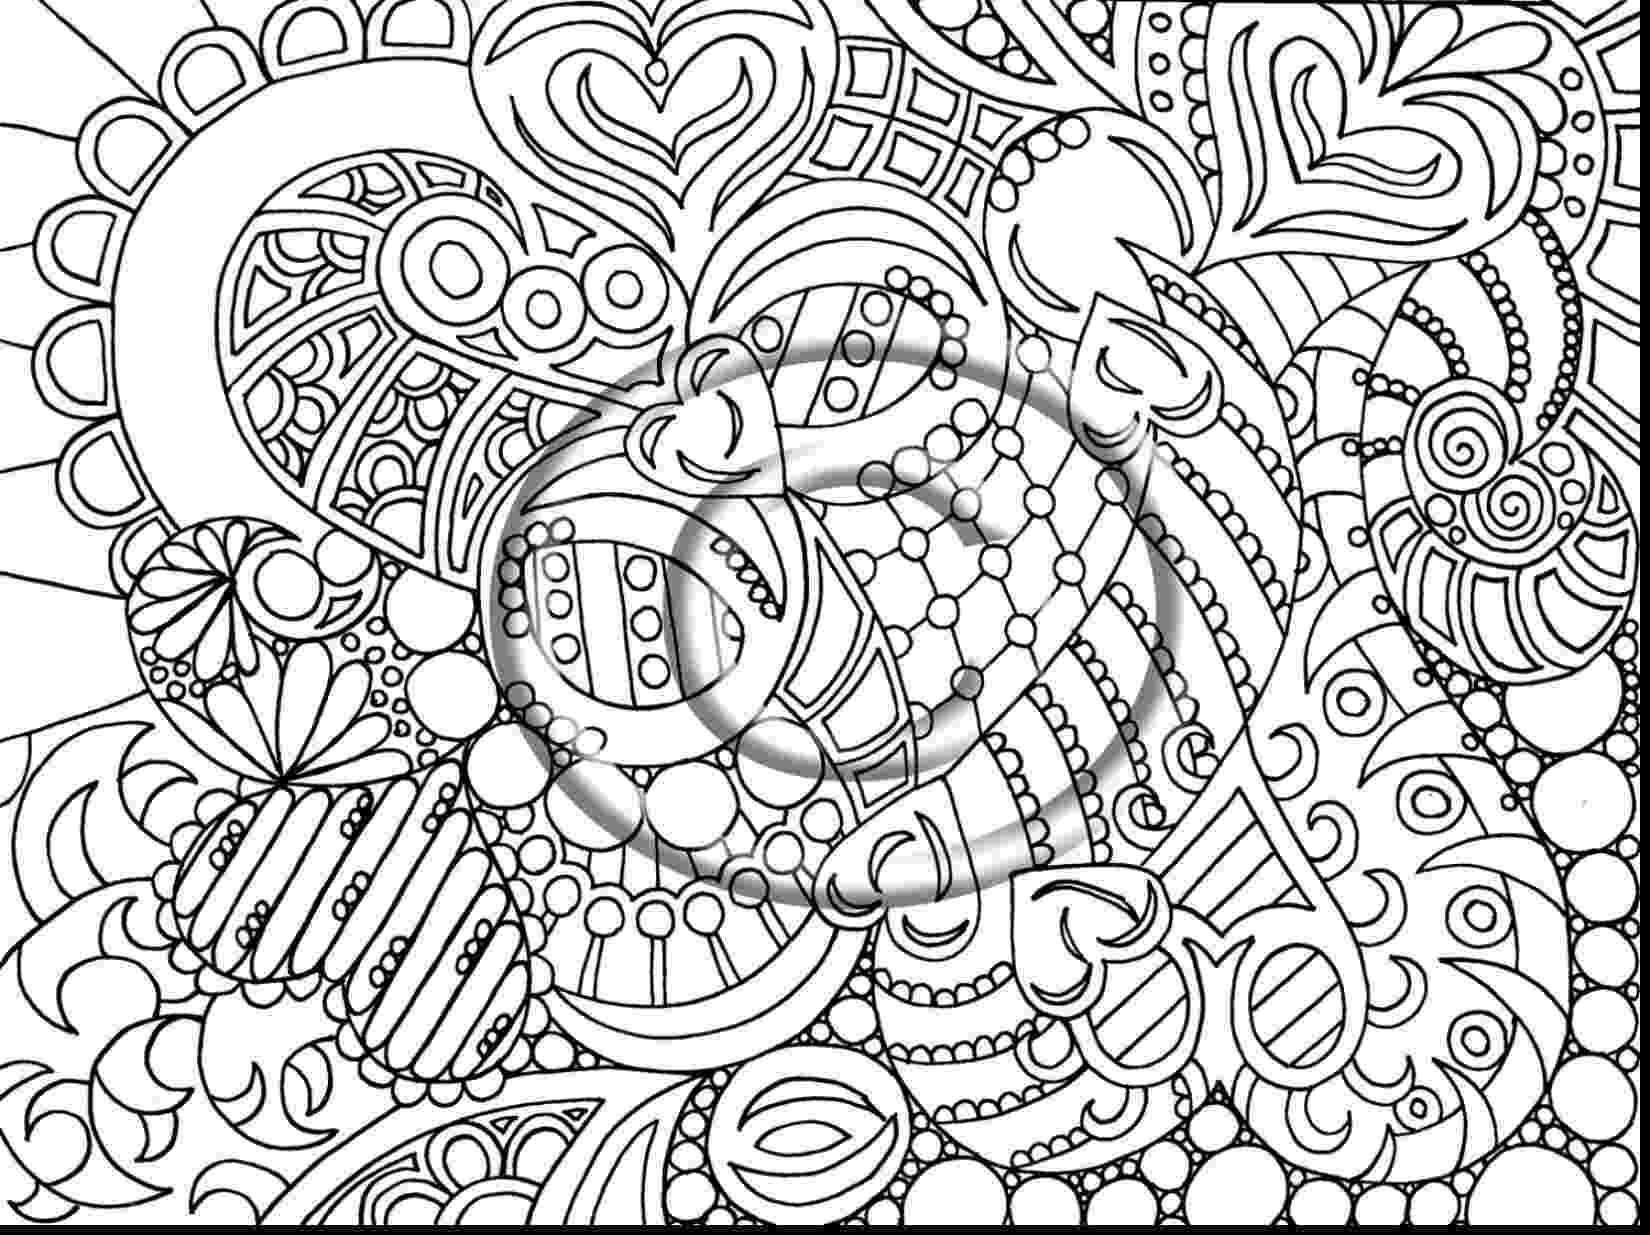 trippy coloring pages printable cfsh 21st century doggerel august 2013 coloring printable trippy pages